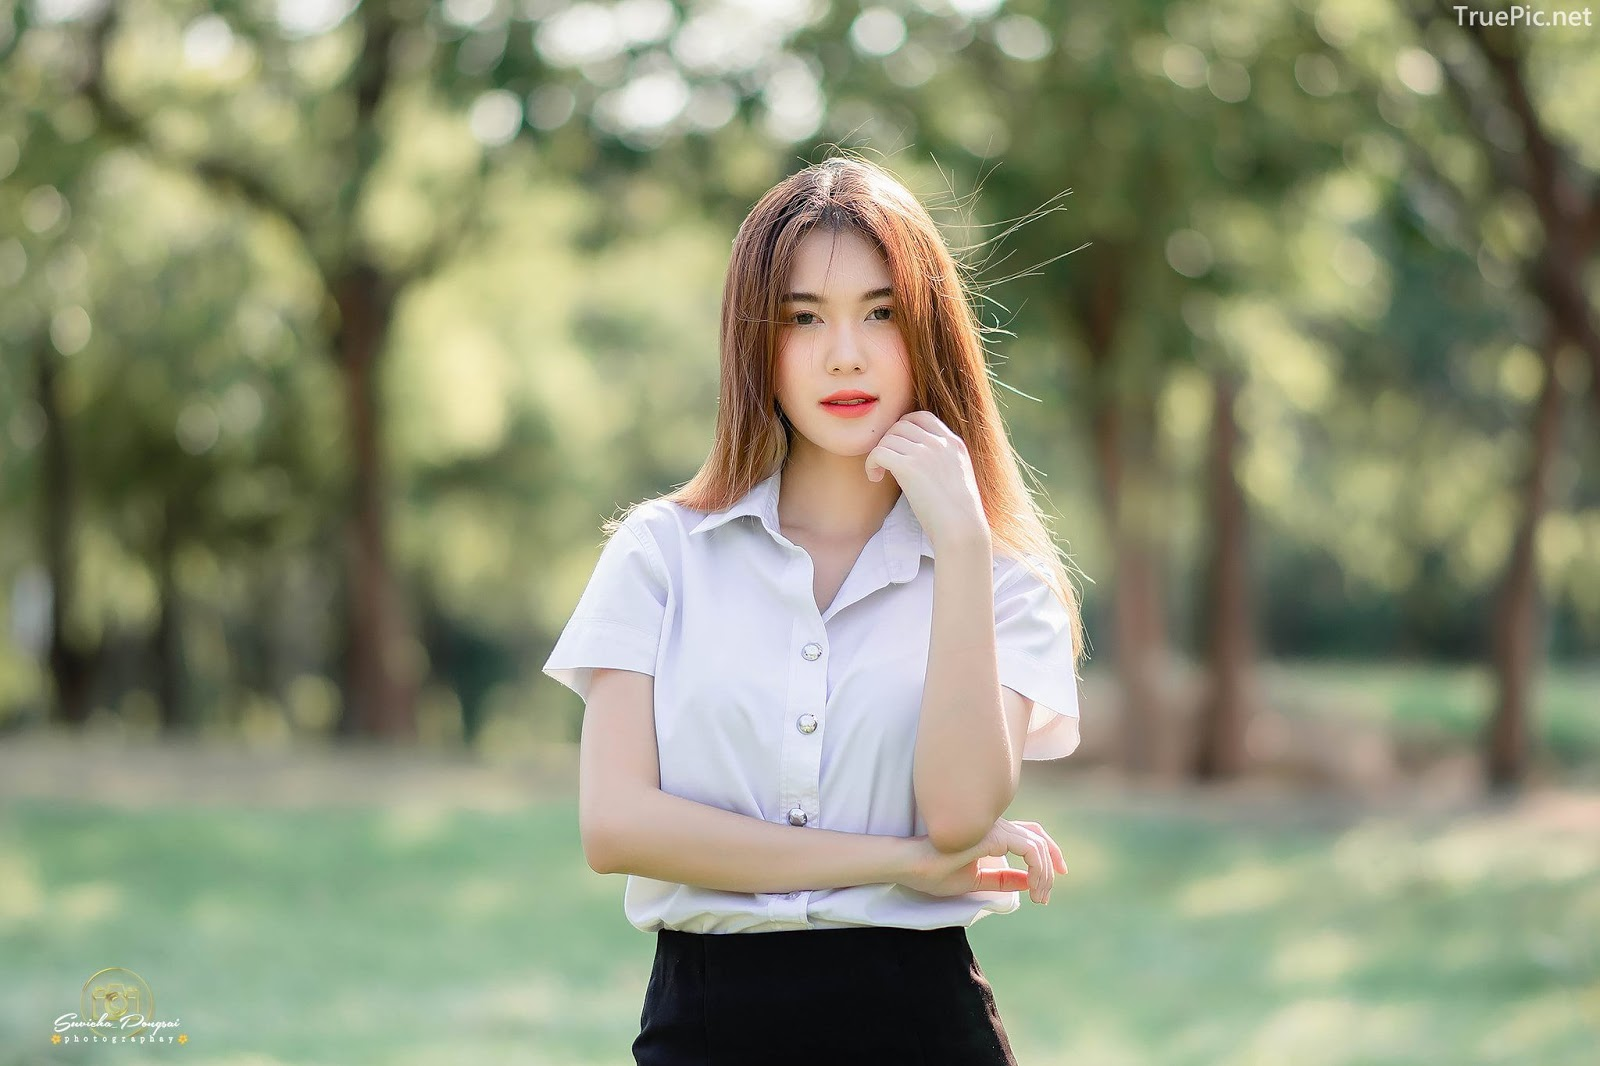 Image-Hot-Girl-Thailand-Pitcha-Srisattabuth-Cute-Student-With-a-Sweet-Smile-TruePic.net- Picture-6